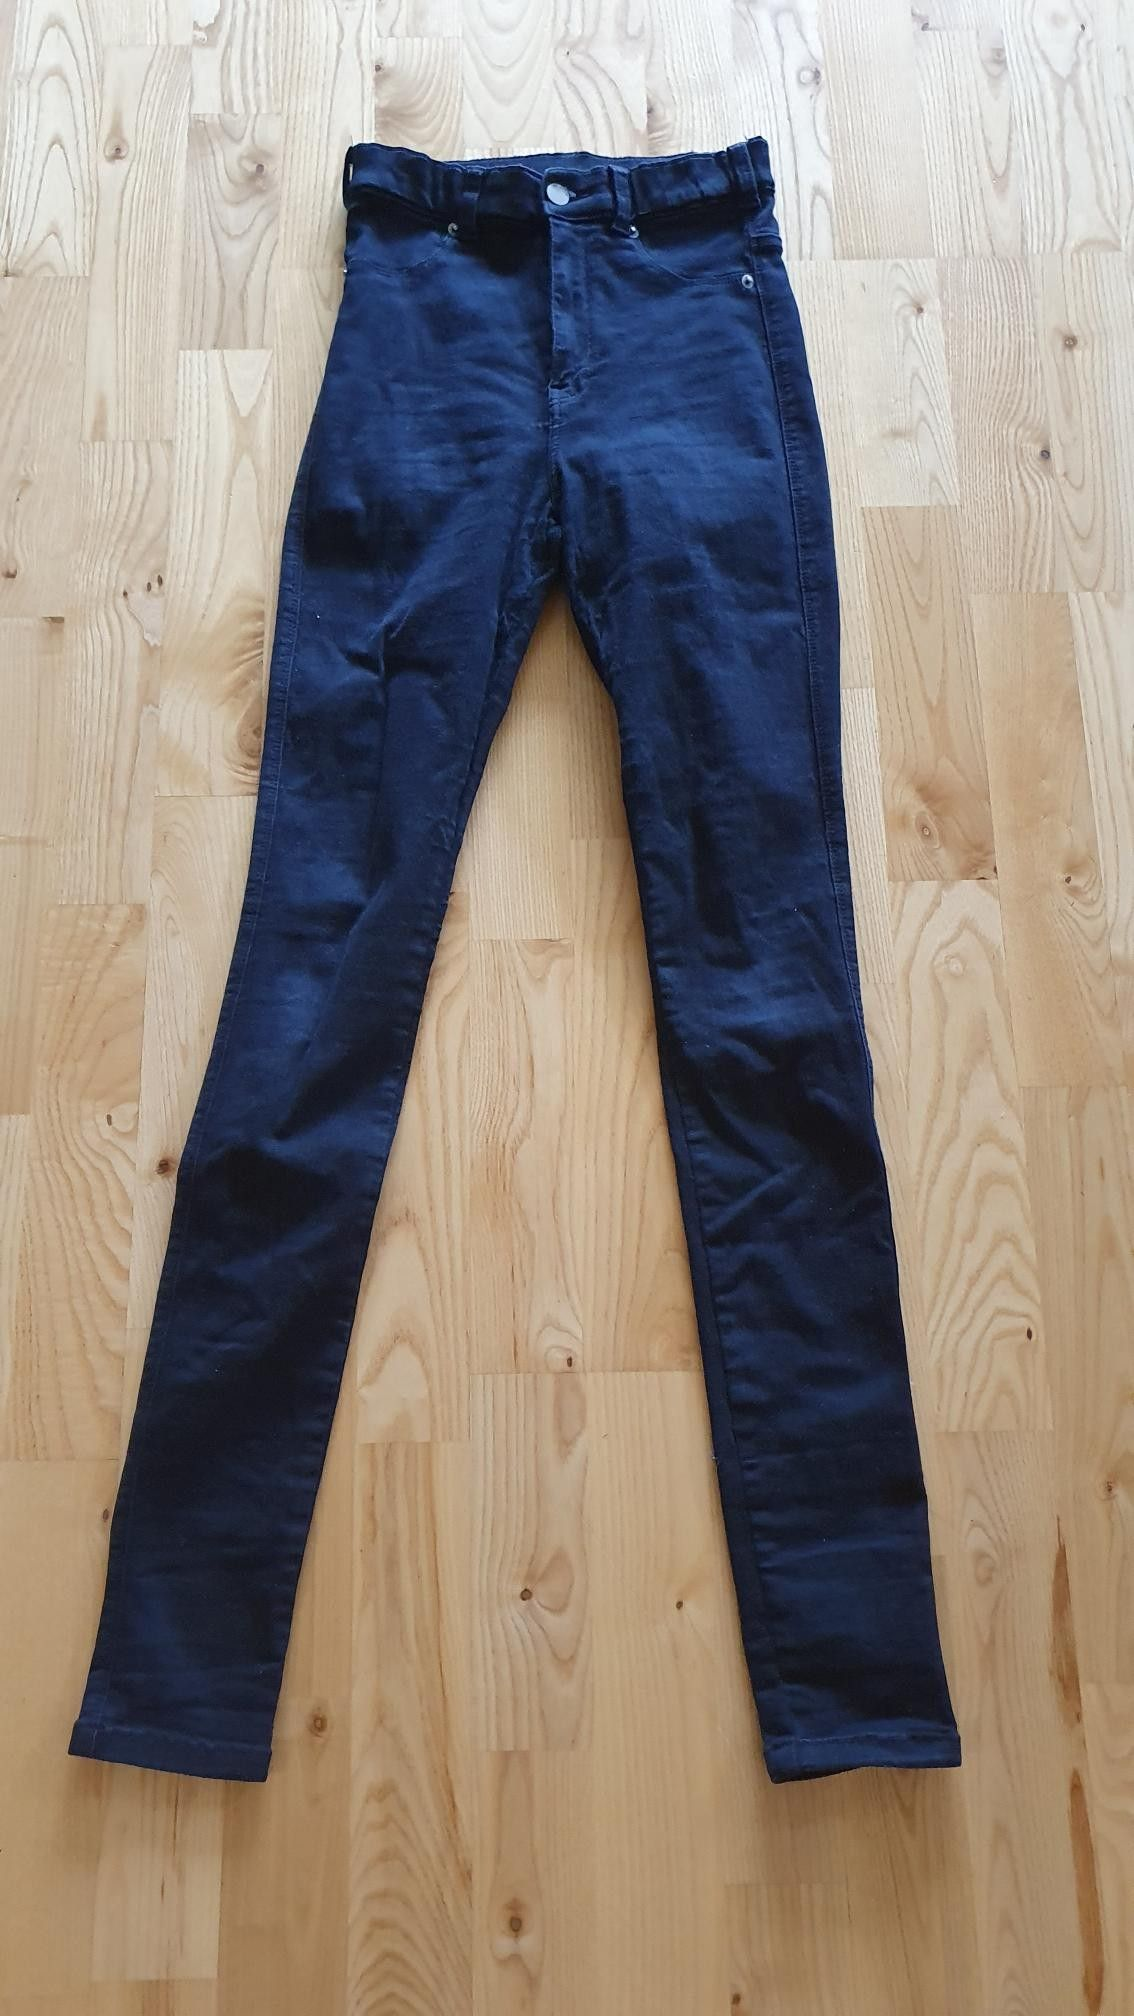 Dr. Denim jeans | FINN.no